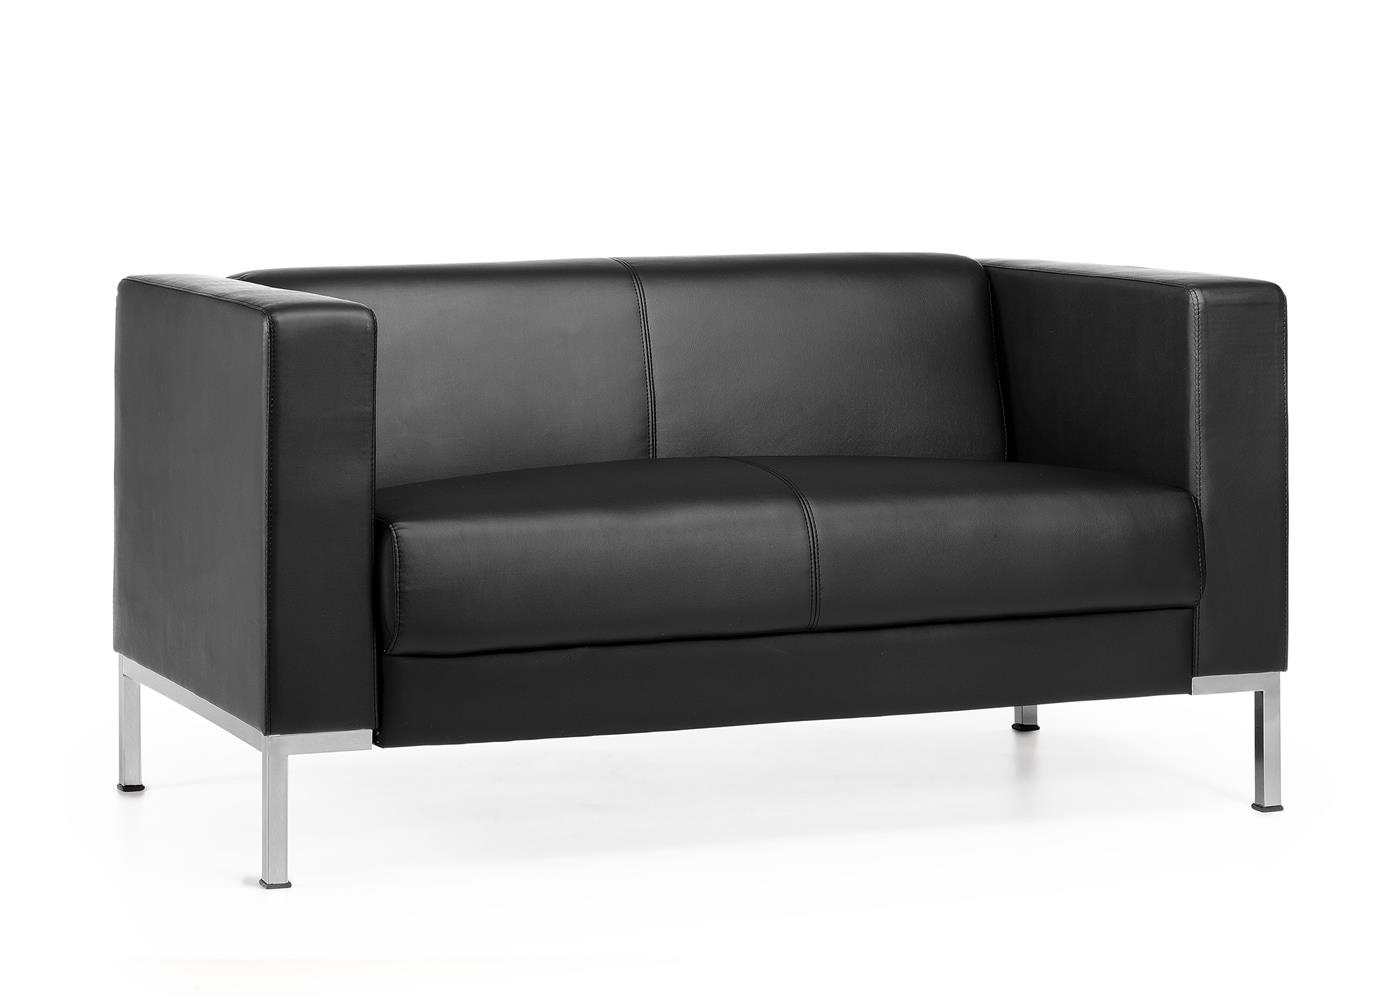 Canapé Confortable Canapé 2 Places Capio Design Elégant Grand Confort En Cuir Noir